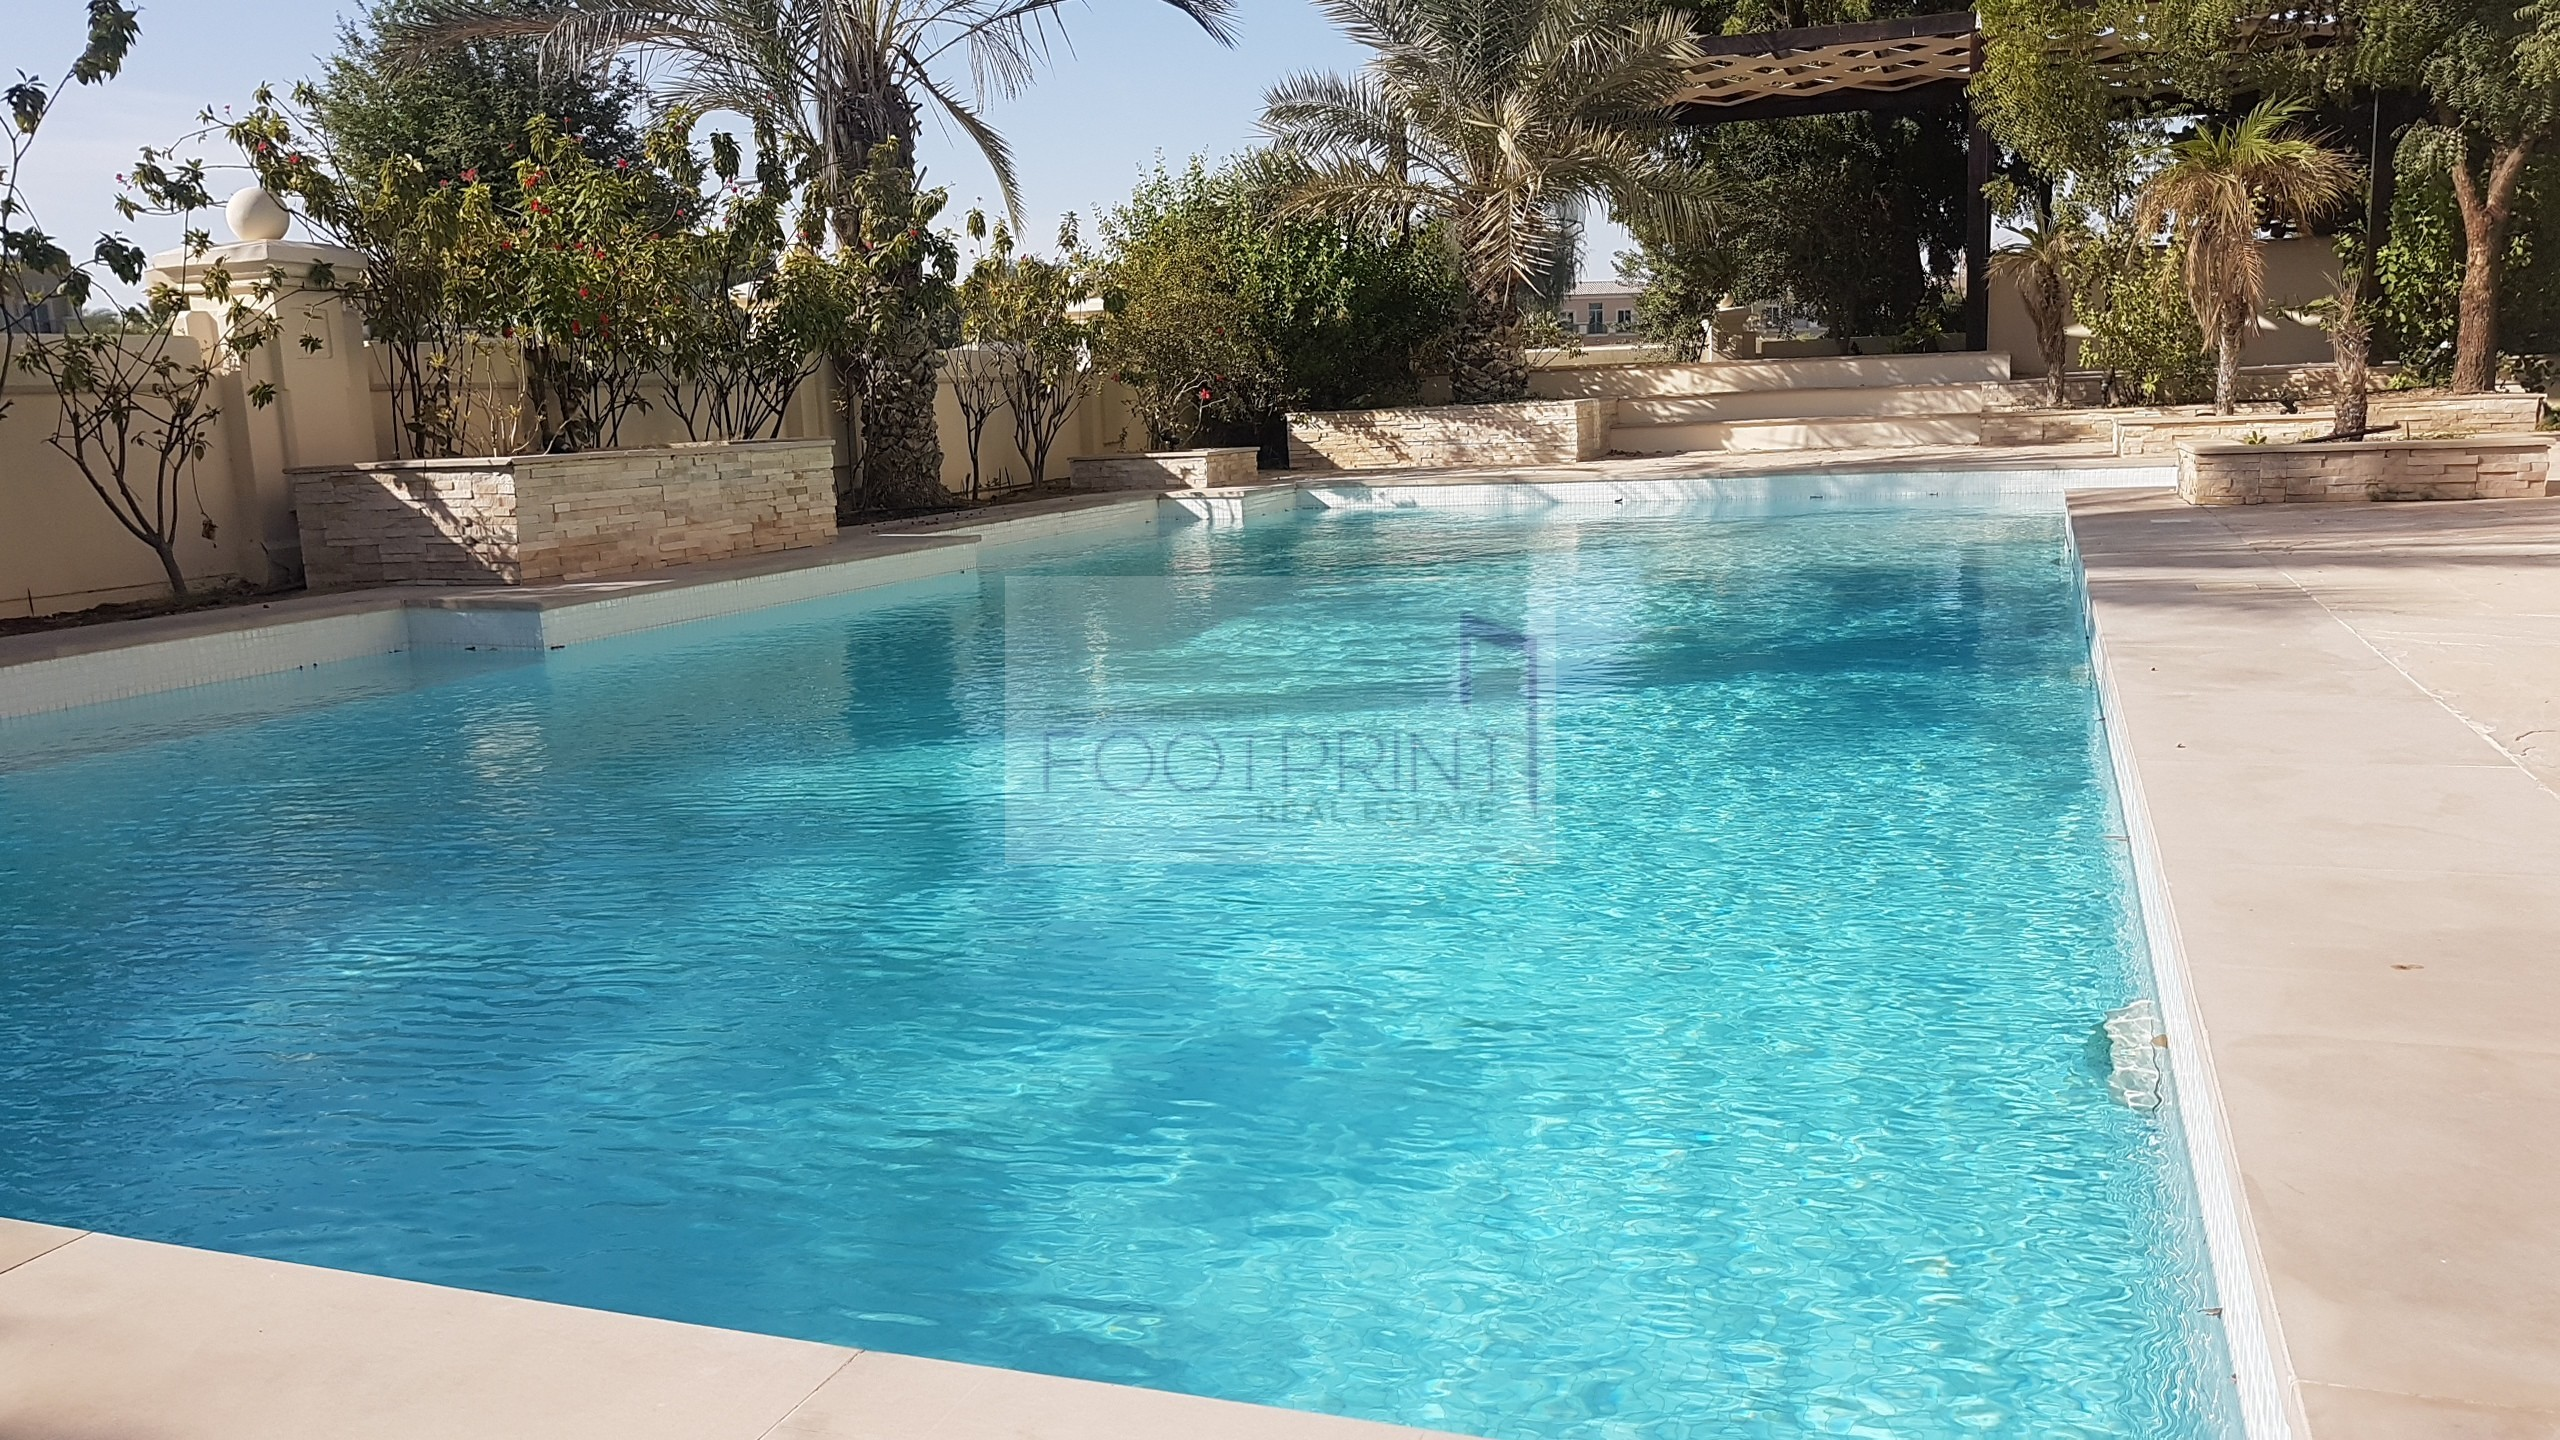 Spacious Landscaped With Massive Pool !!